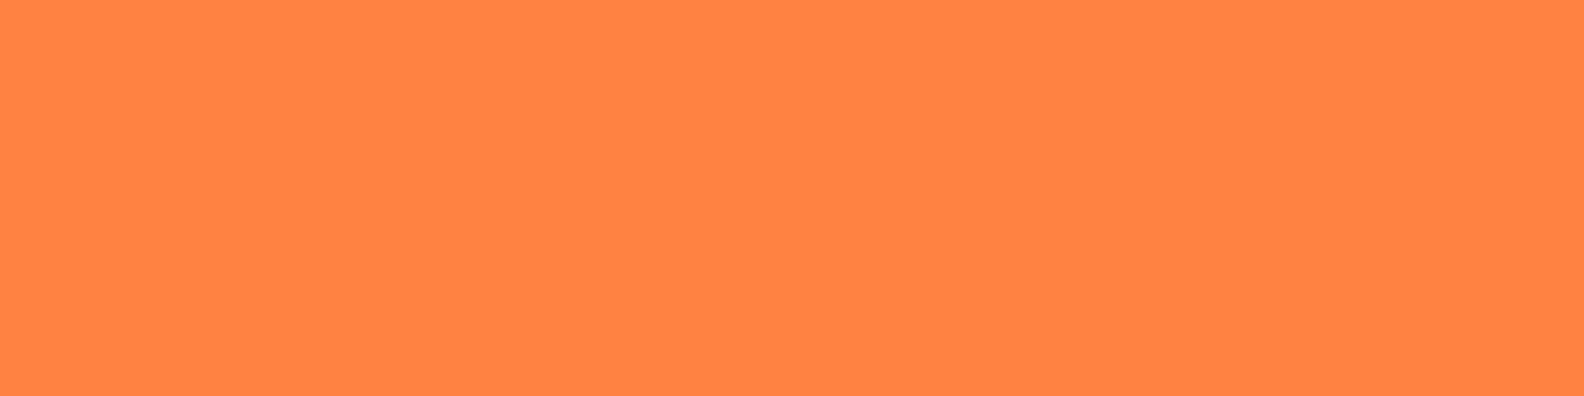 1584x396 Mango Tango Solid Color Background